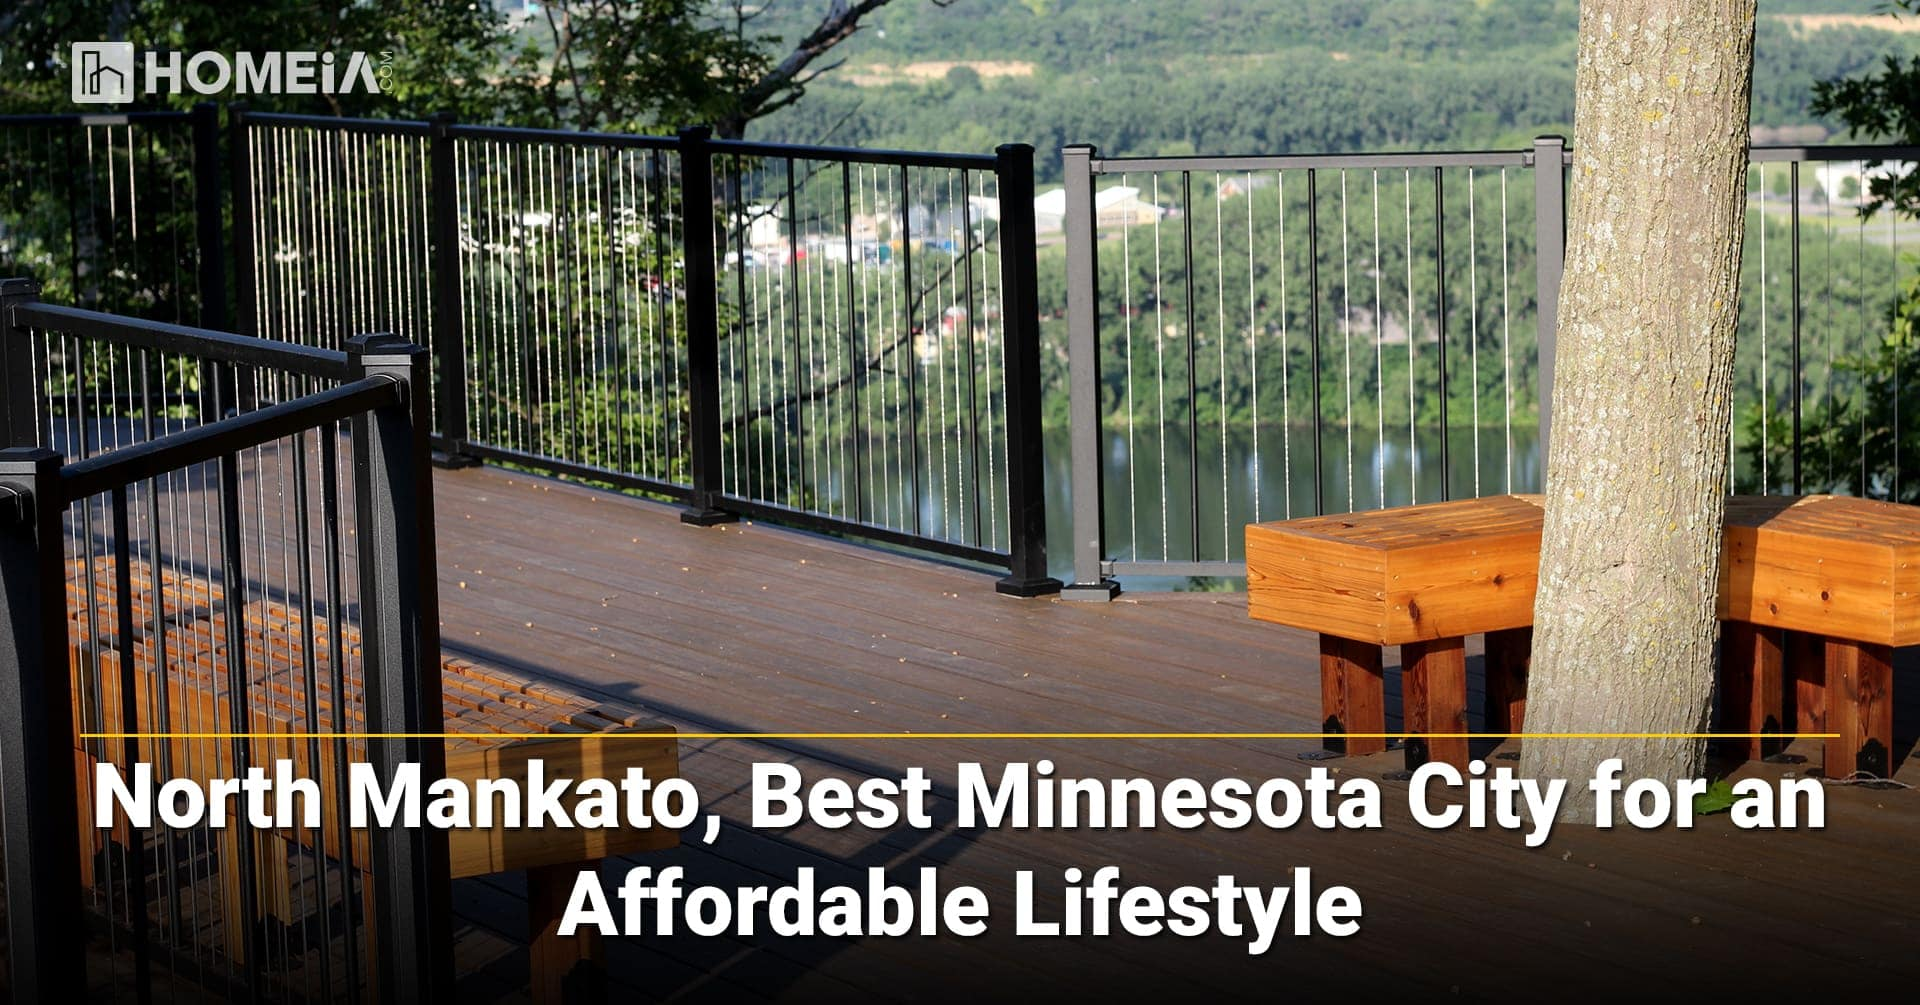 North Mankato, Best Minnesota City for an Affordable Lifestyle